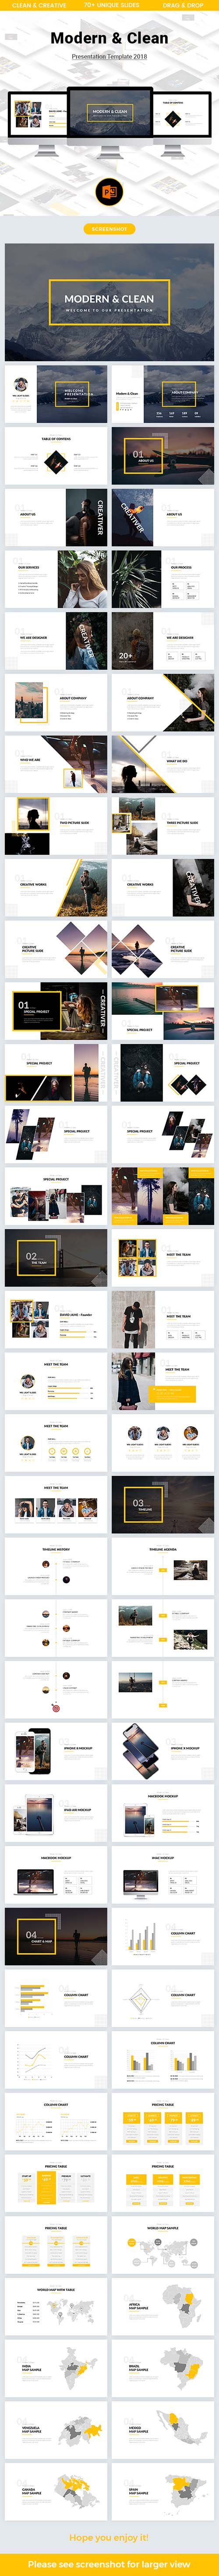 GR - Modern & Clean Powerpoint Template 2018 21965782